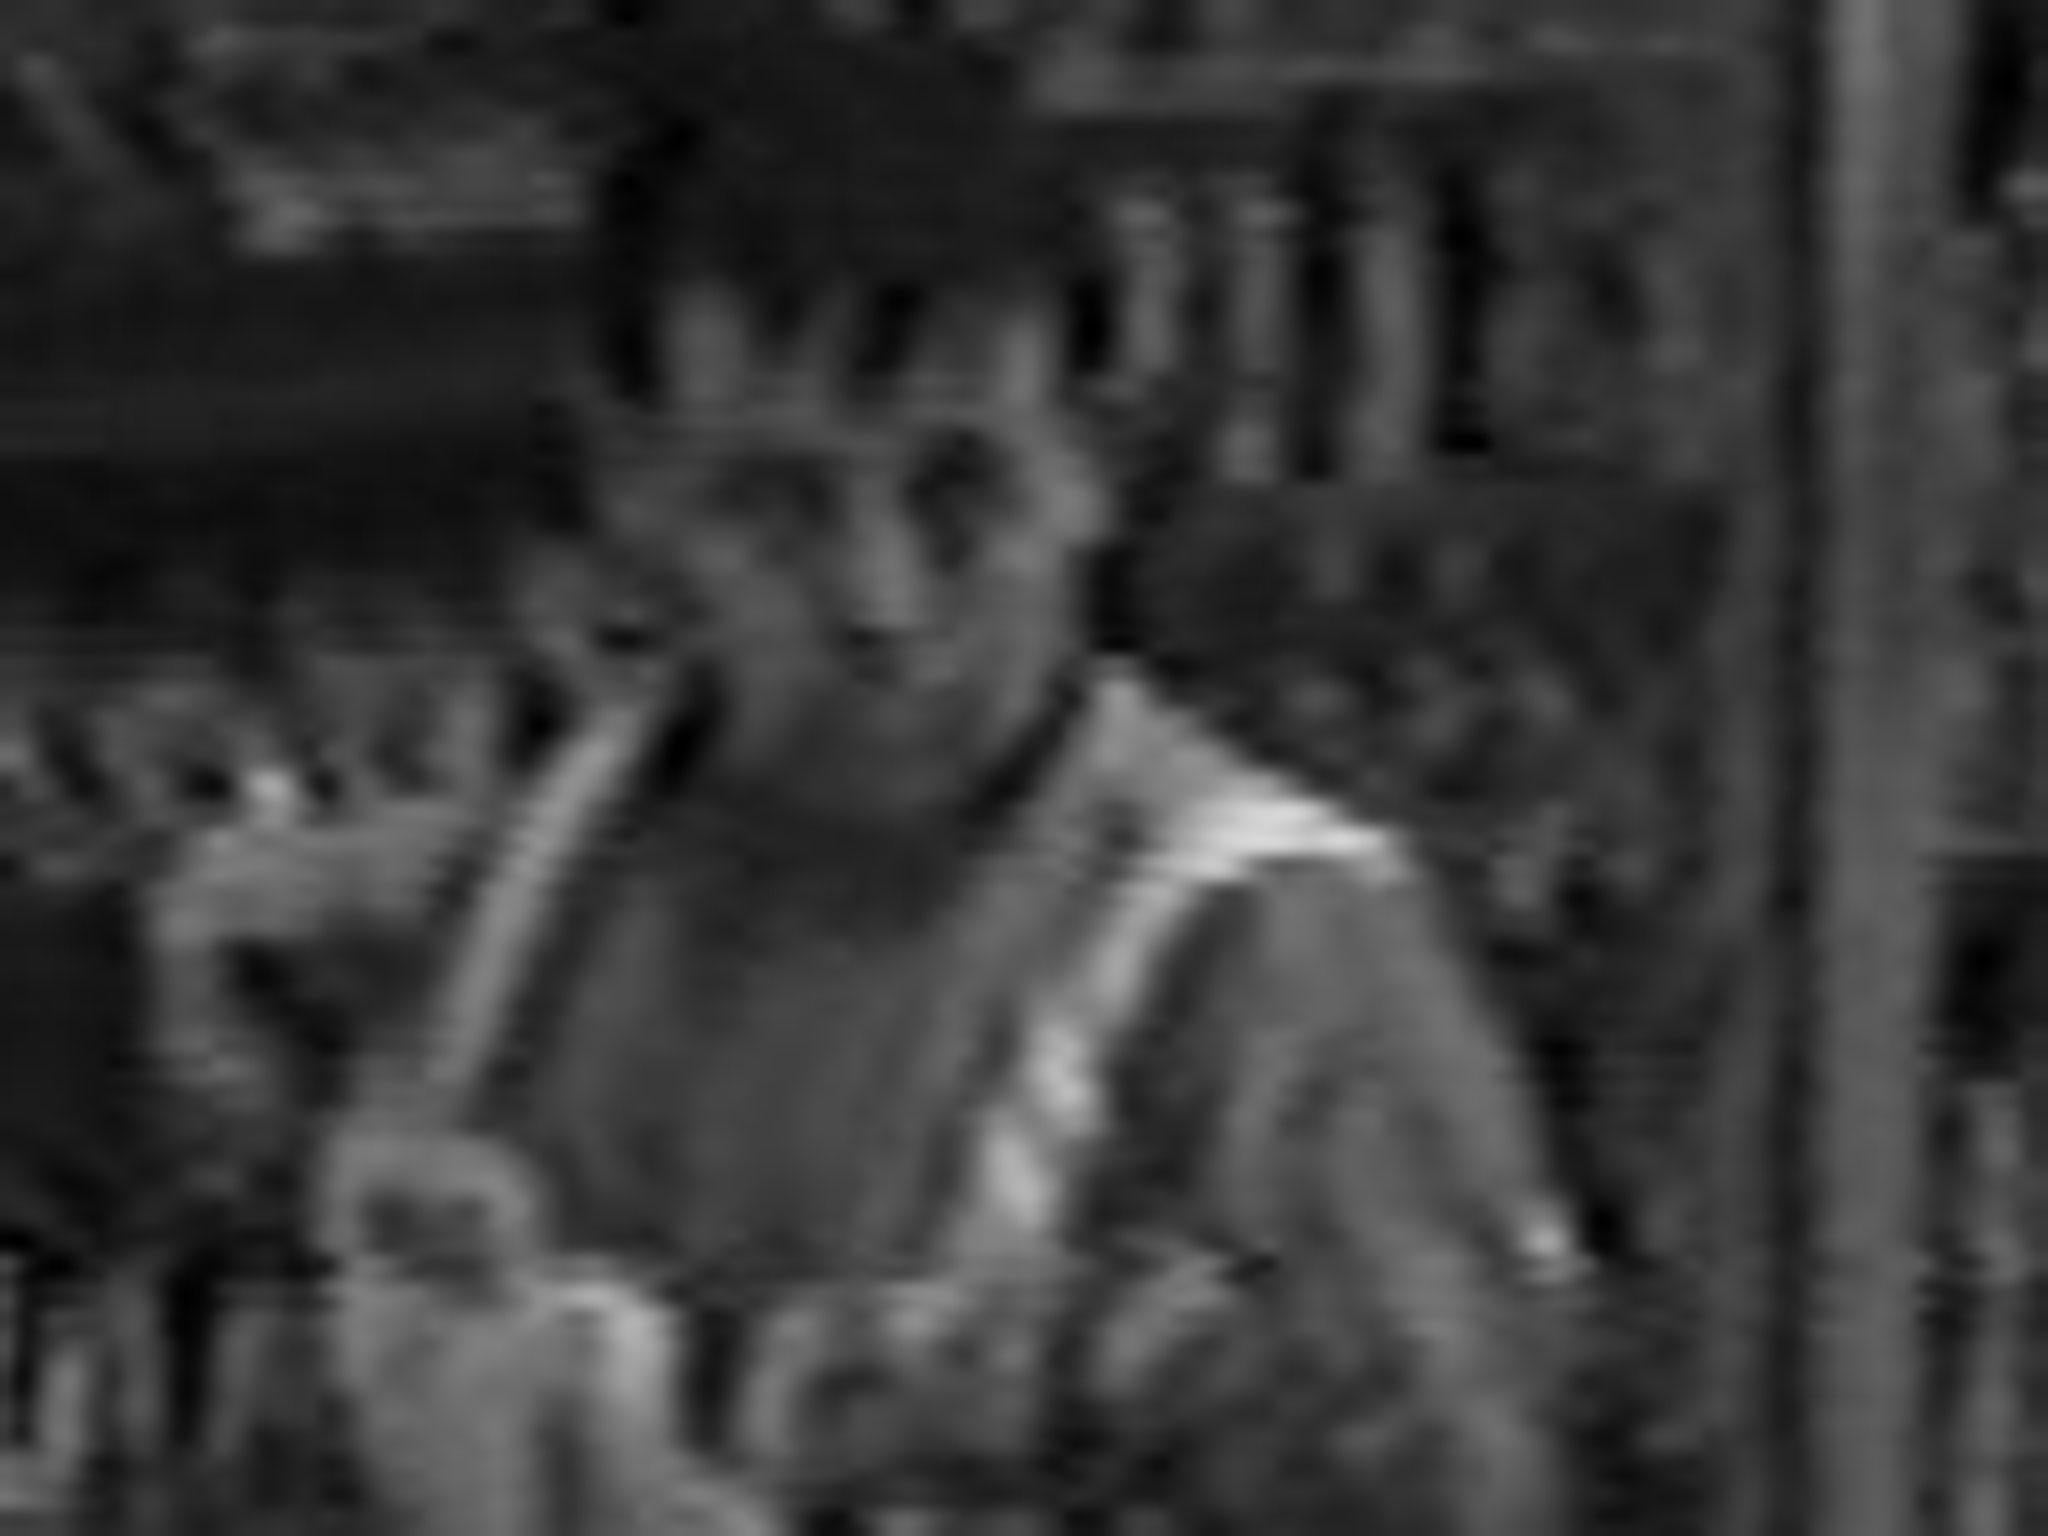 Stephen Lawrence murder investigation: New digitally enhanced CCTV images released of mystery witness   The Independent